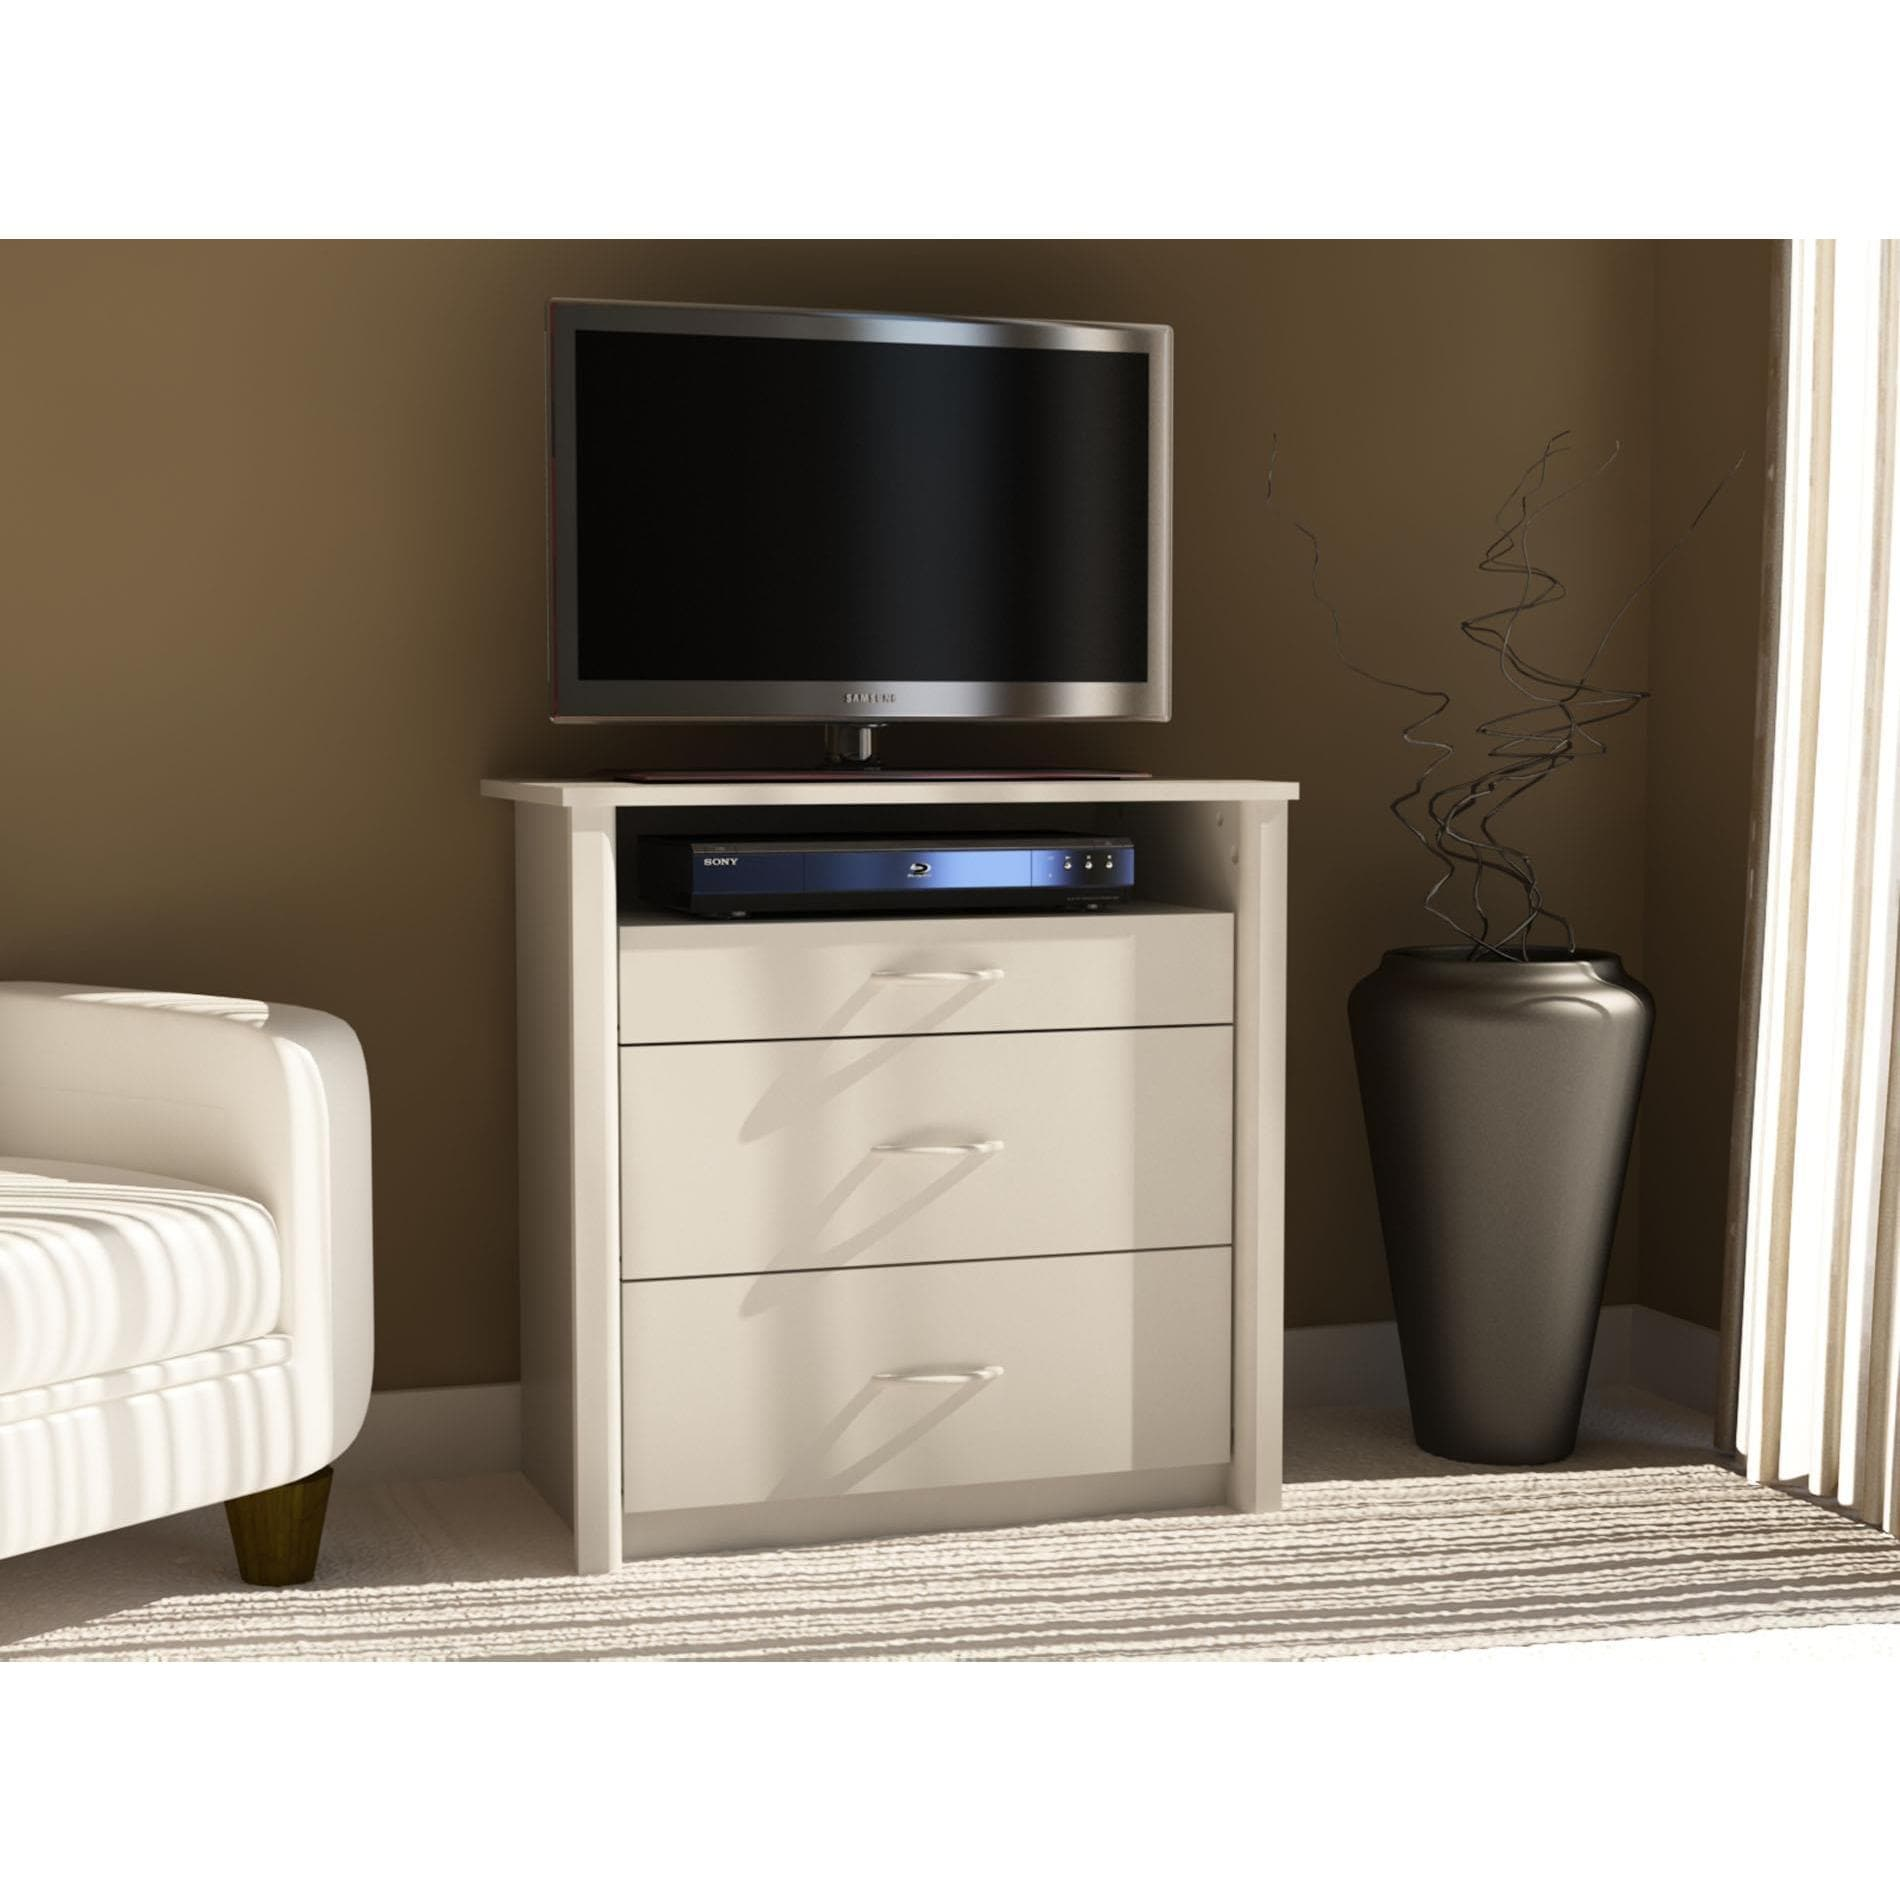 rooms for pine sale furniture with black drawer dresser chest go white wallpaper espresso shay gray cheap alex tv media to corner of storage drawers dressers bedroom